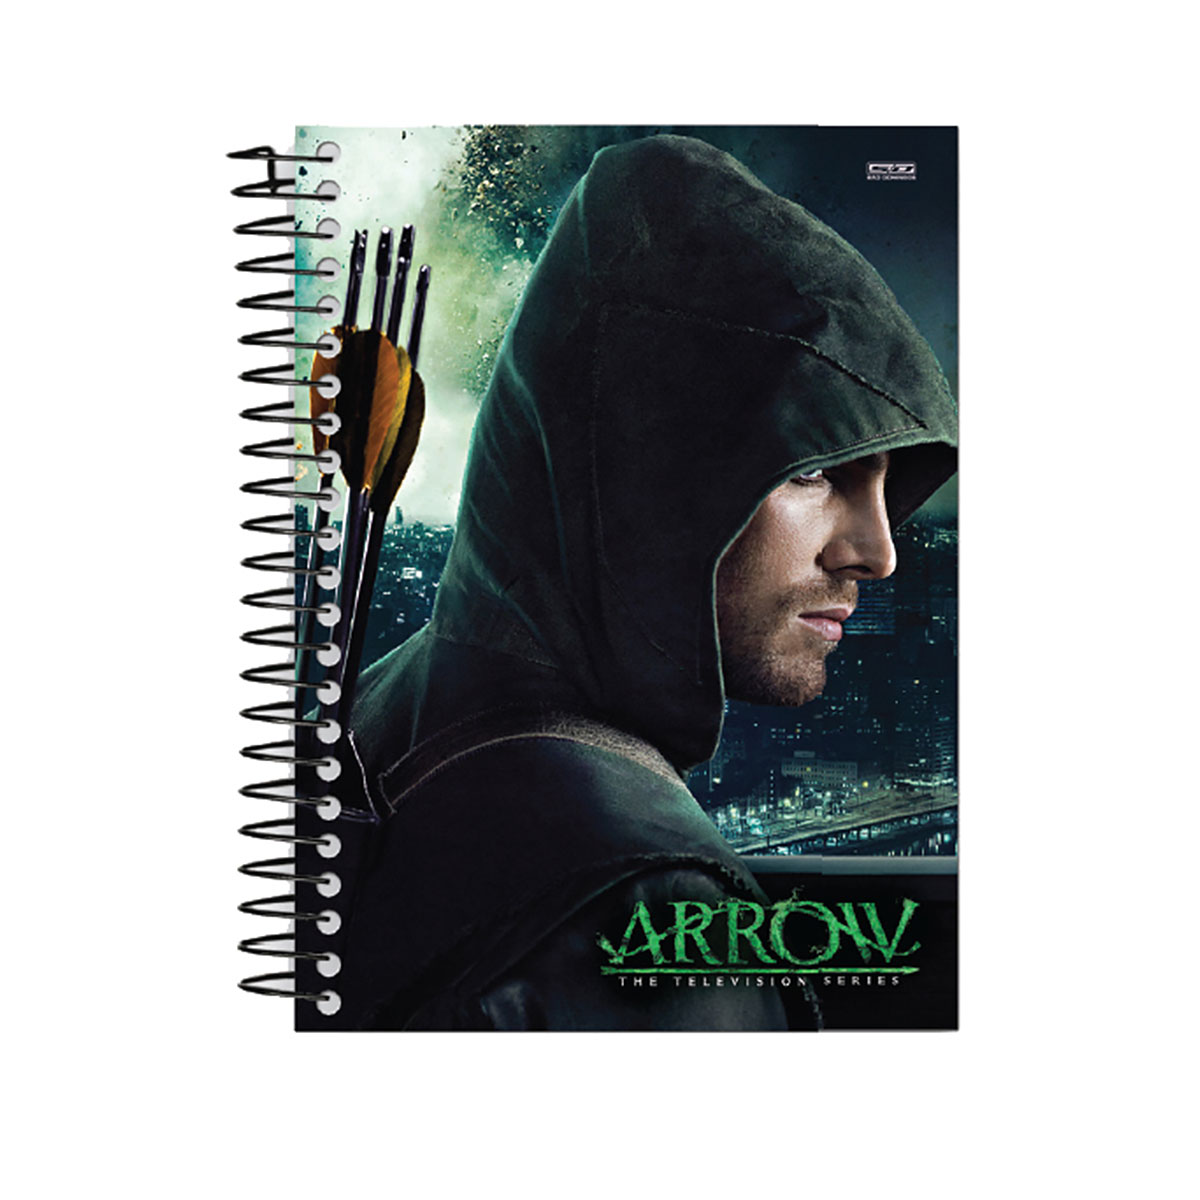 Caderno Arrow Profile 1 Matéria